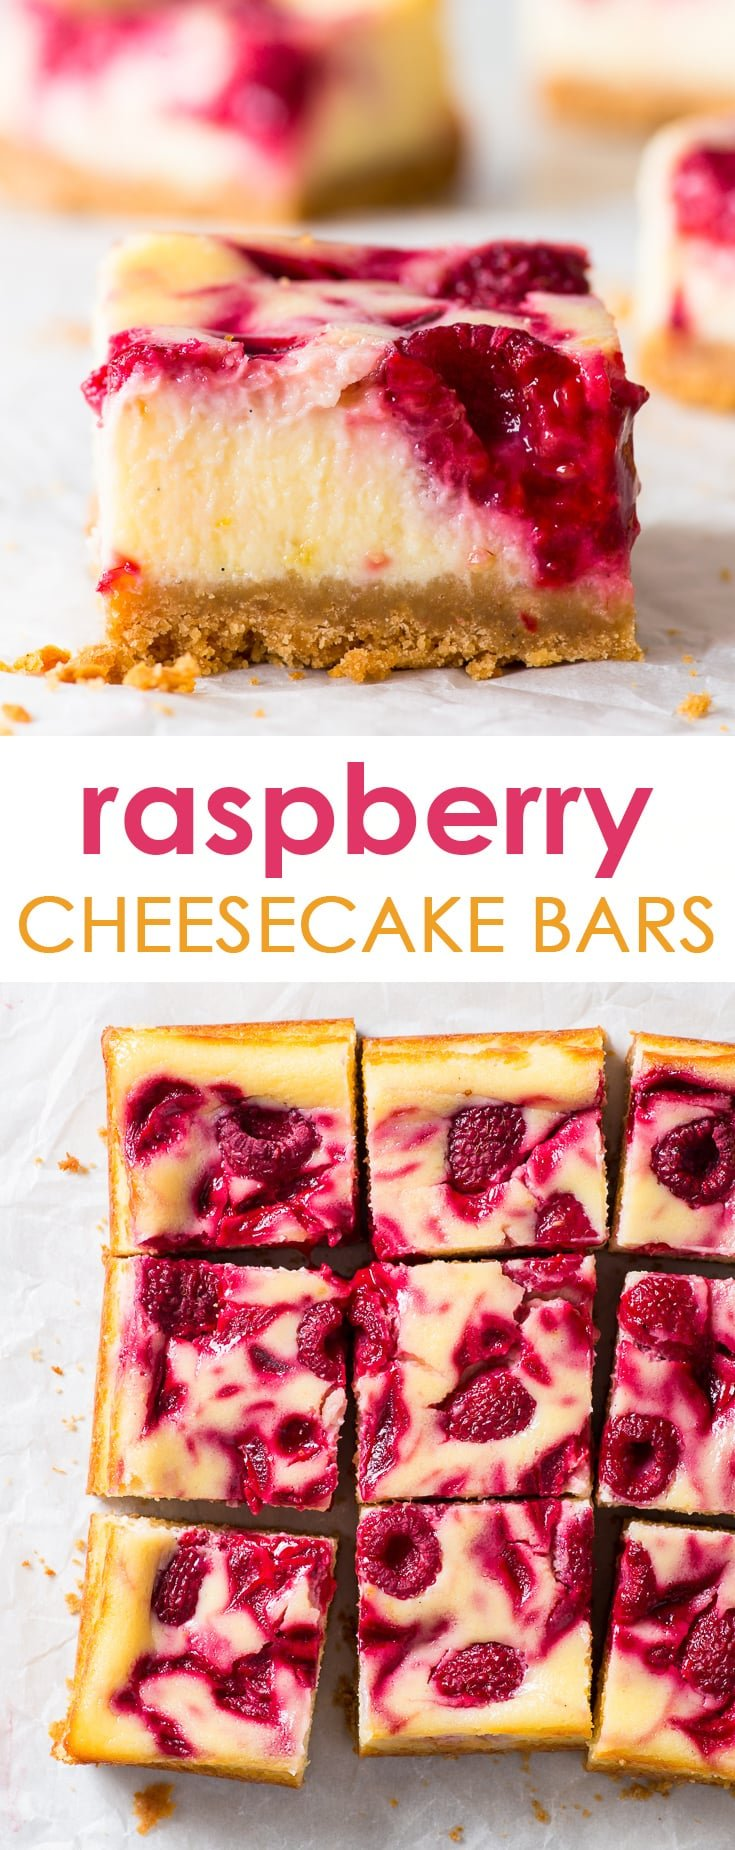 Small Batch Raspberry Cheesecake Bars - You will love these raspberry cheesecake bars, with their crumbly crust and the creamy, luscious filling. The lemon zest and abundance of raspberries give the bars a wonderful freshness, and balance out the sweetness perfectly. Plus, they are super easy to make! Gluten free cheesecake. Cheesecake recipes. Lemon cheesecake. Raspberry dessert. Raspberry recipes. Dessert recipes. Dessert ideas. #cheesecake #dessert